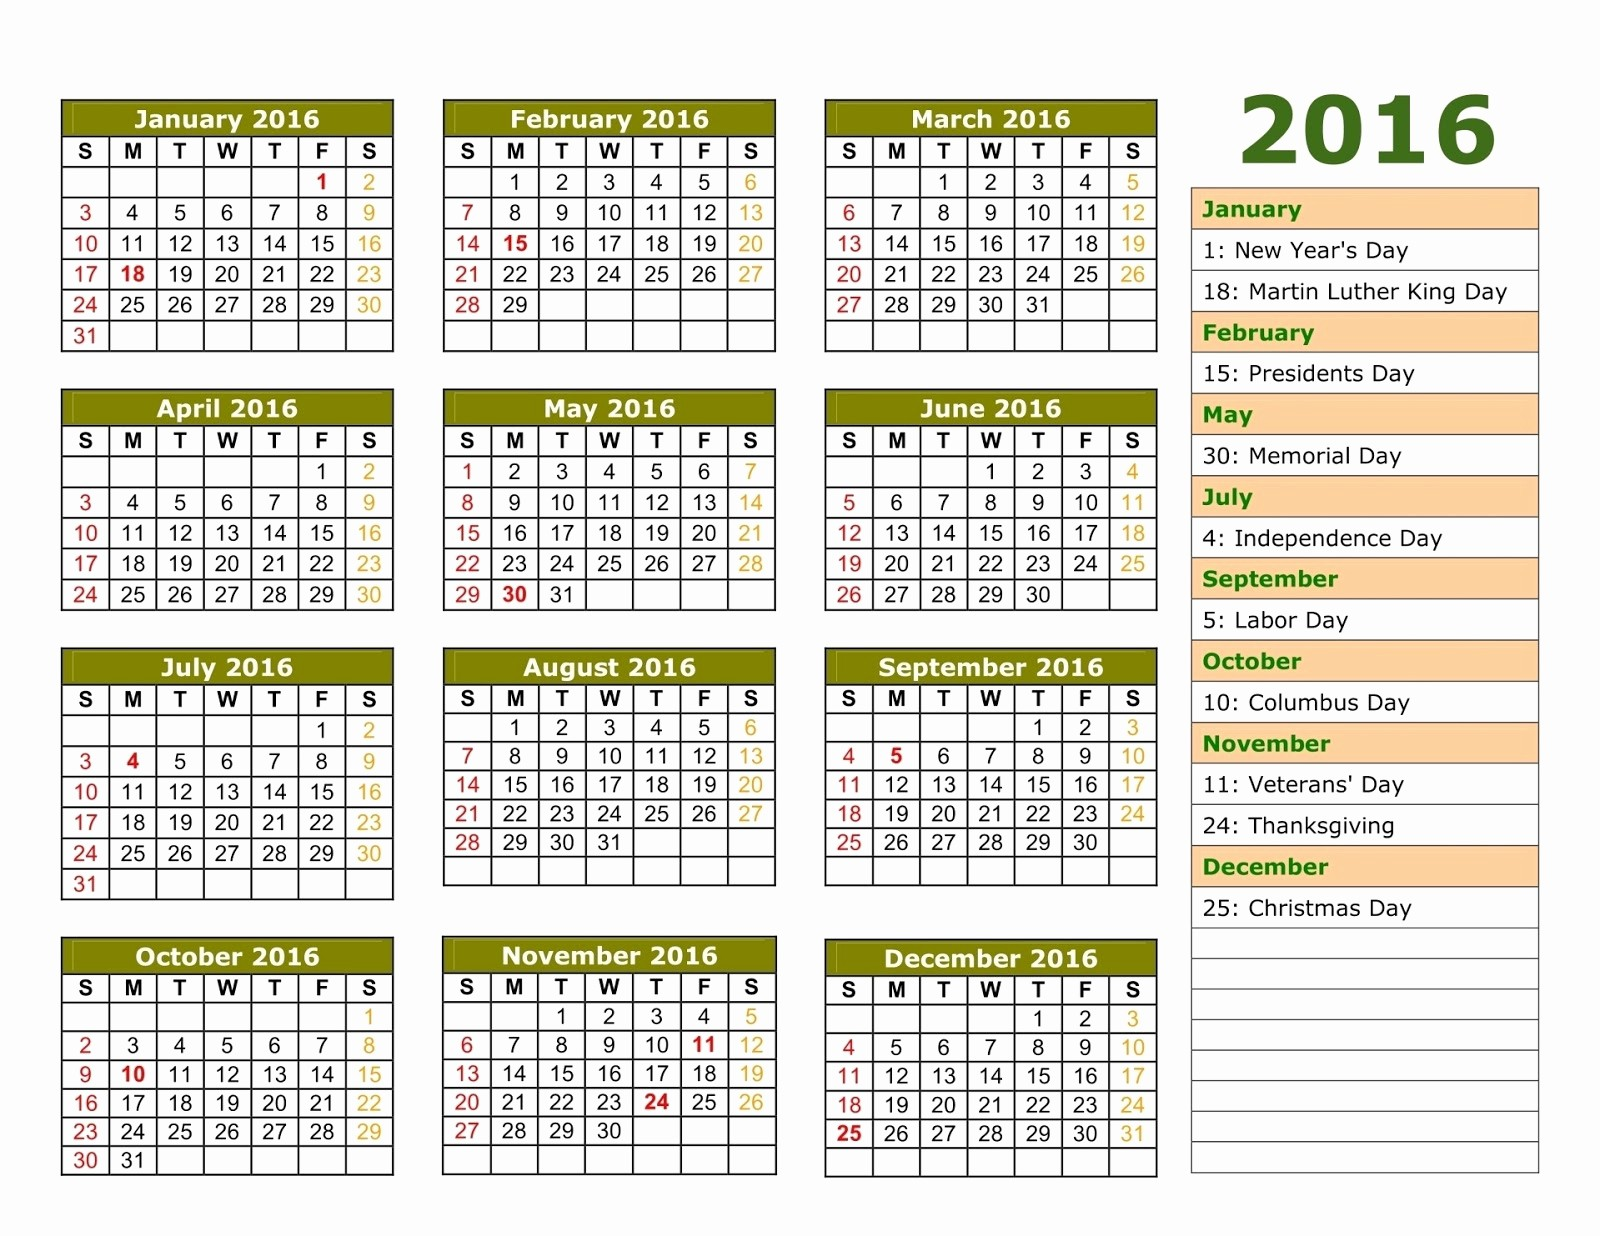 Calendar 2016 Printable with Holidays Best Of Printable 2016 Calendar with Us Holidays Pdf Excel